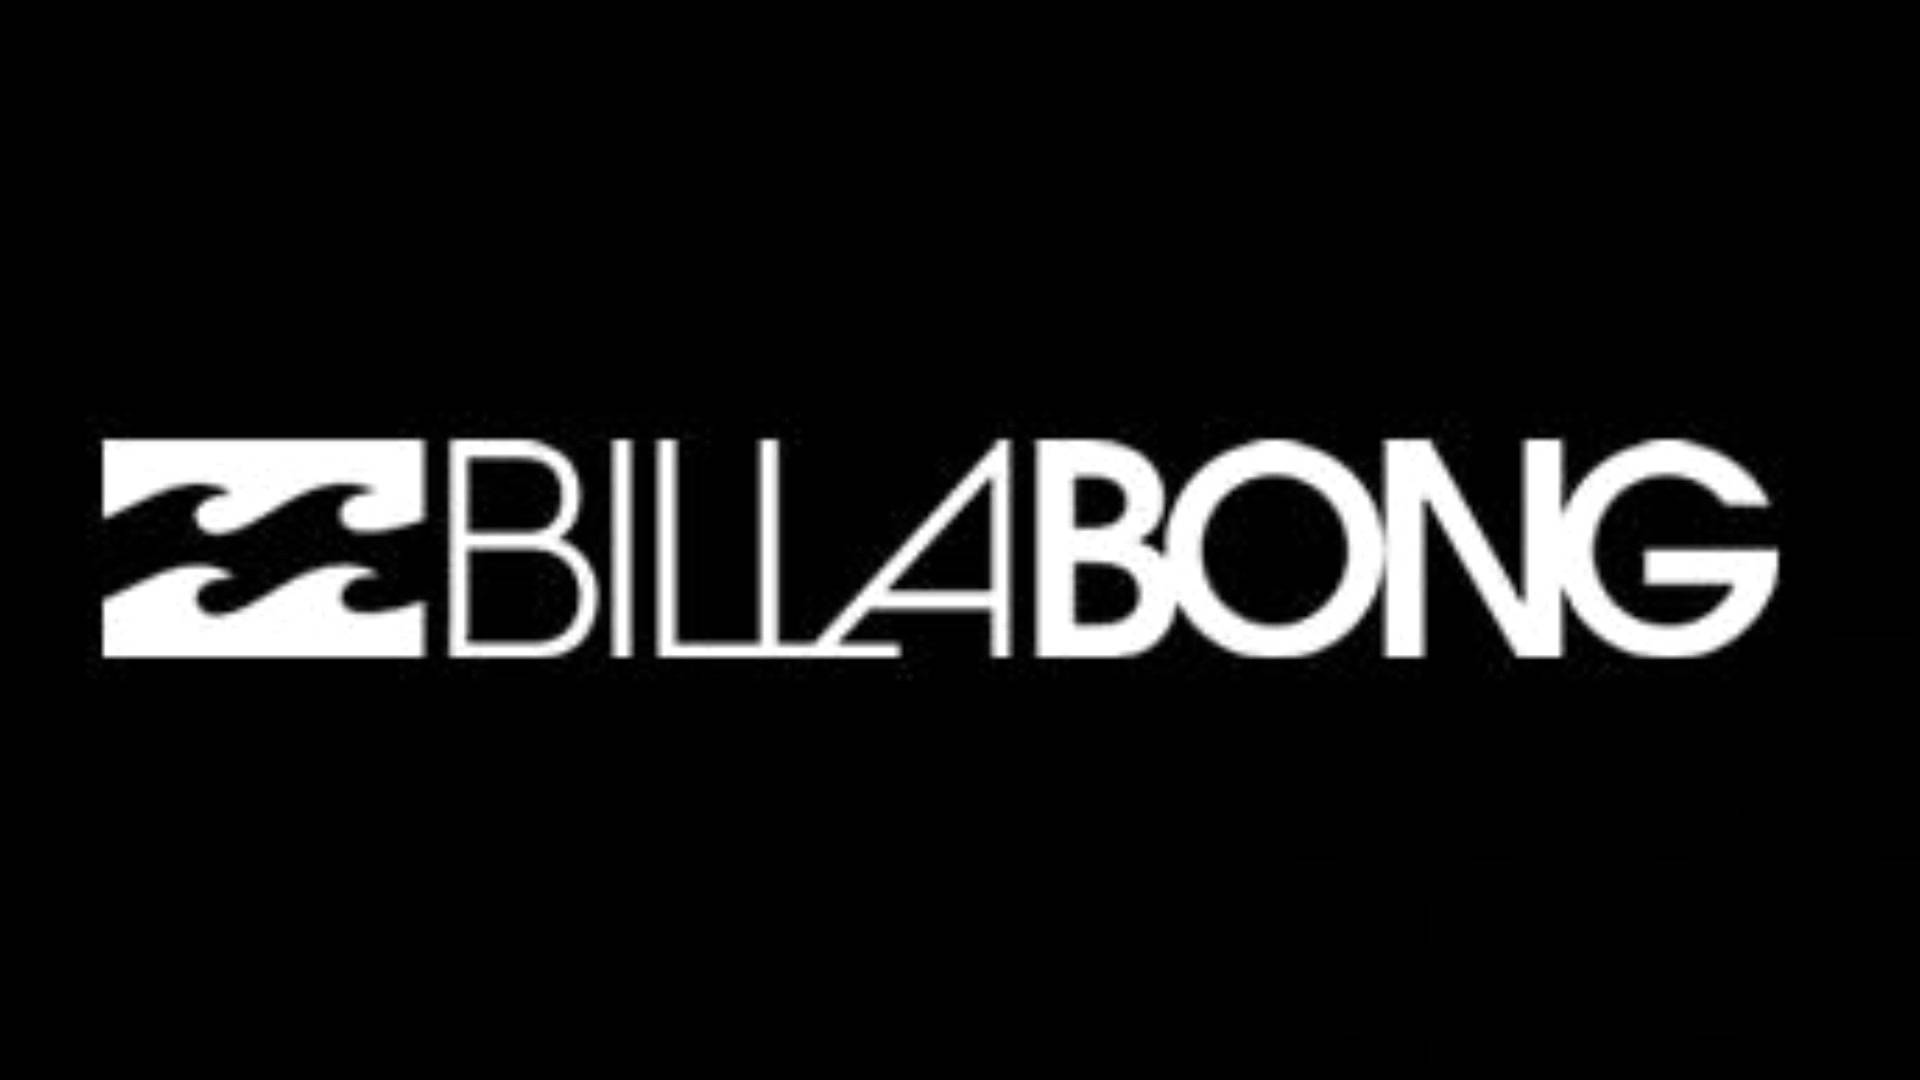 Logotipo Billabong